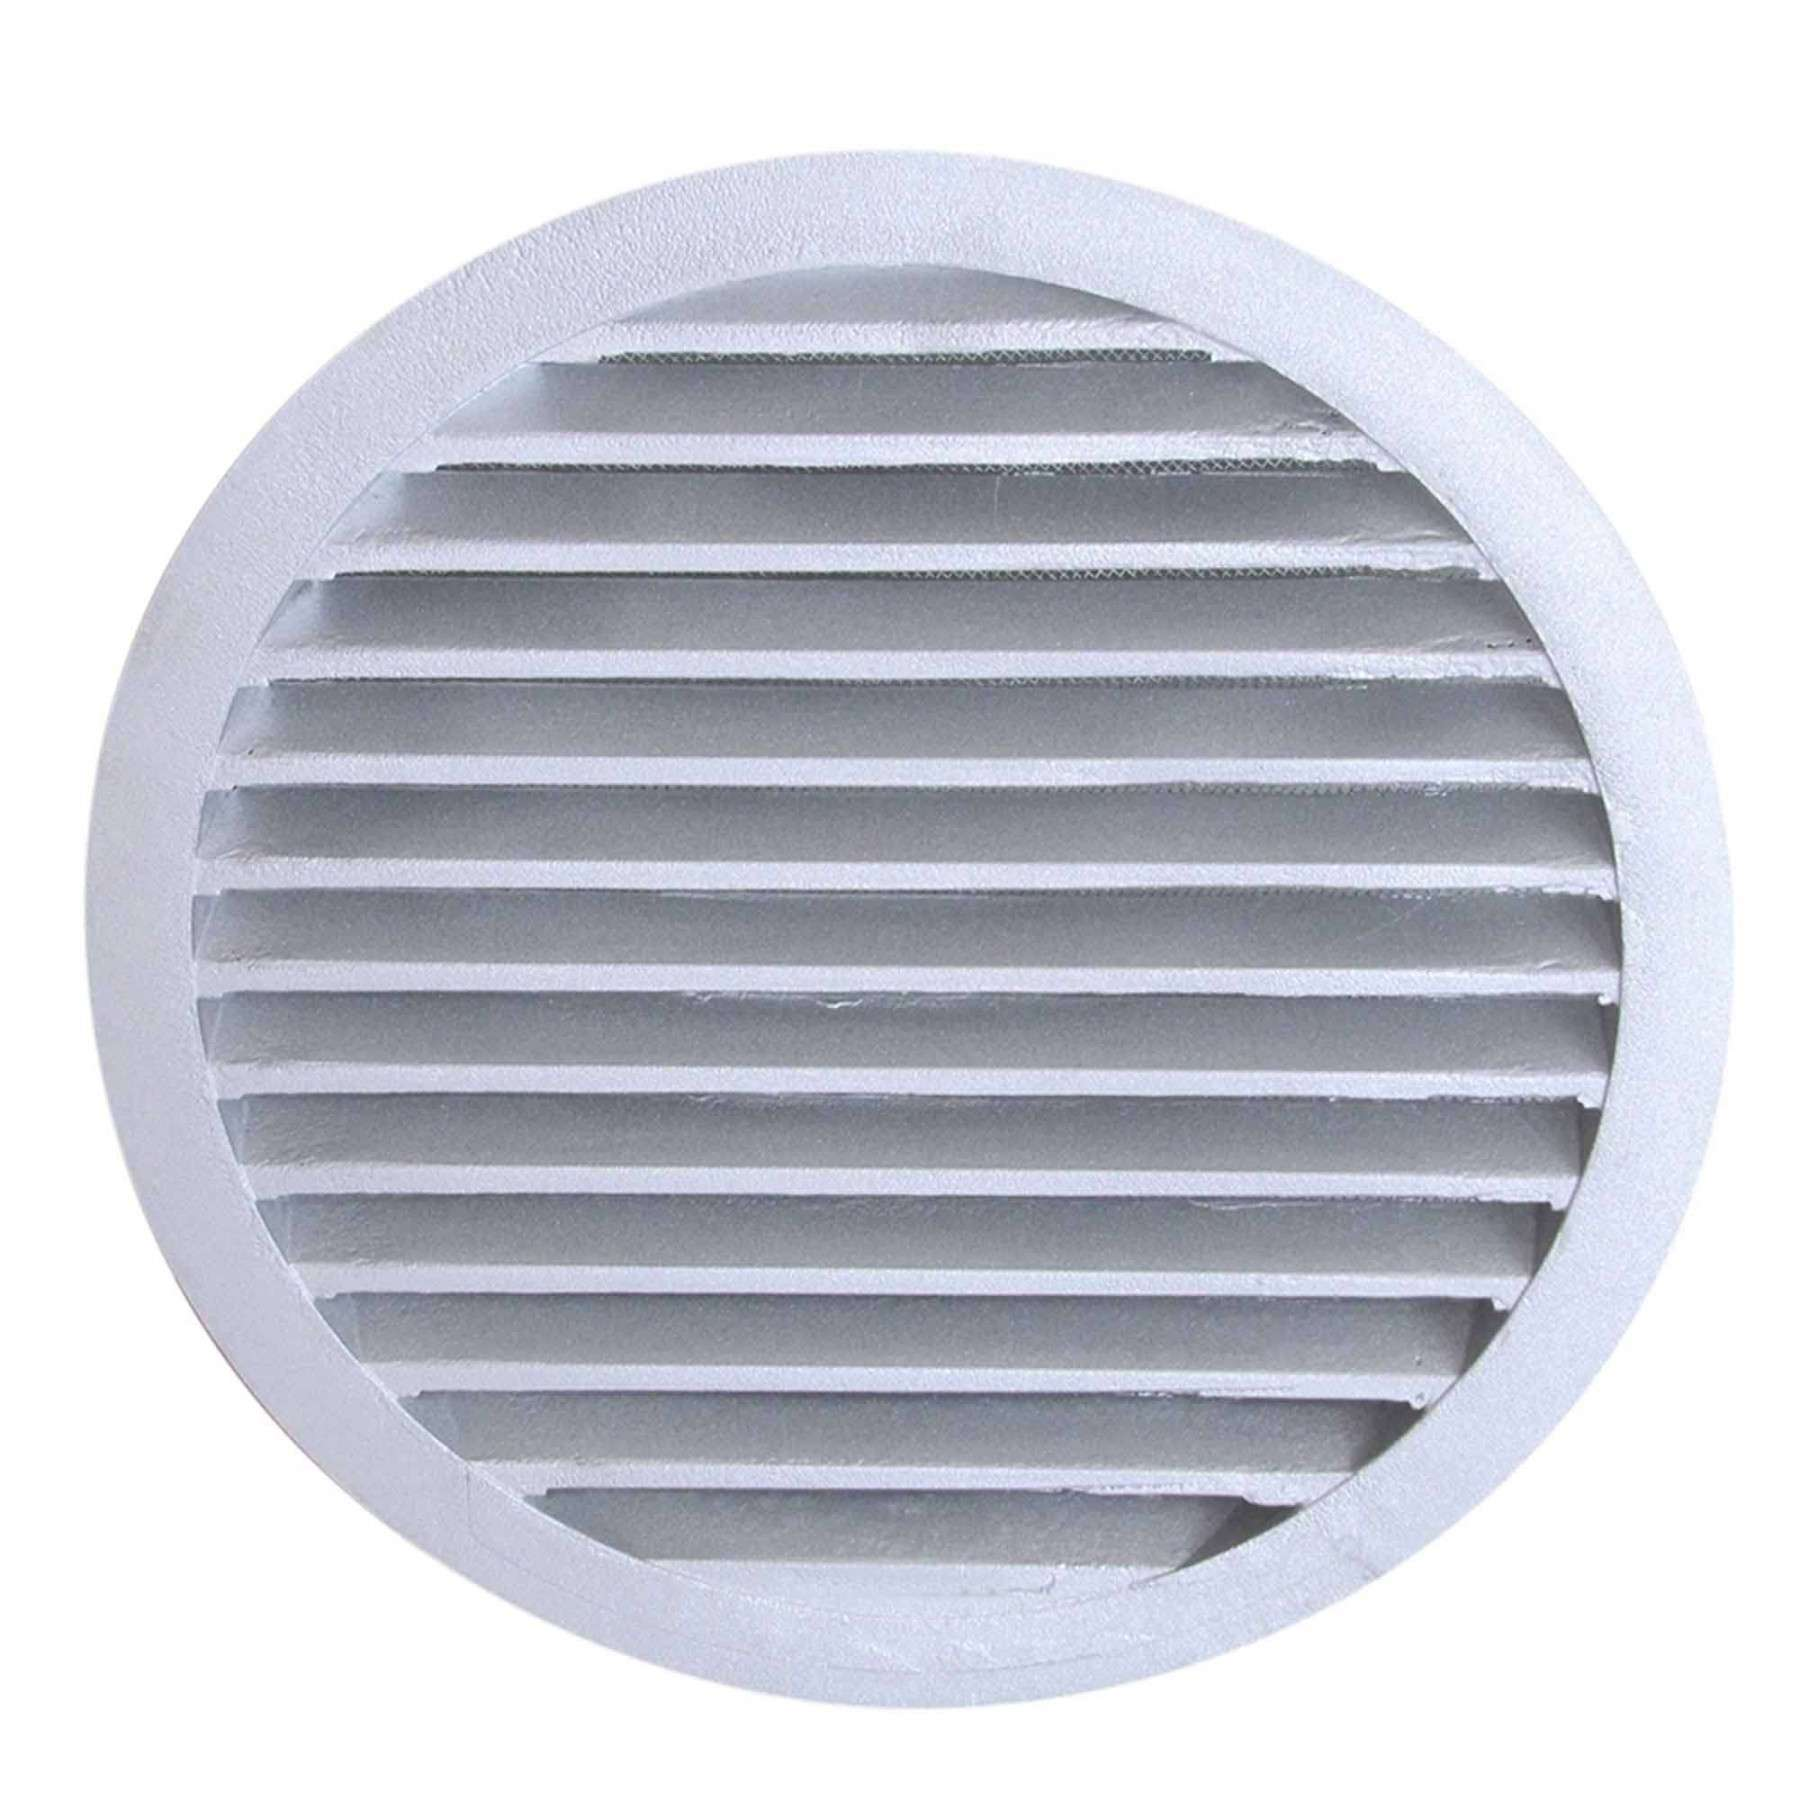 USAV 250 UNELVENT GRILLES CIRCULAIRES EXTERIEURES 873127